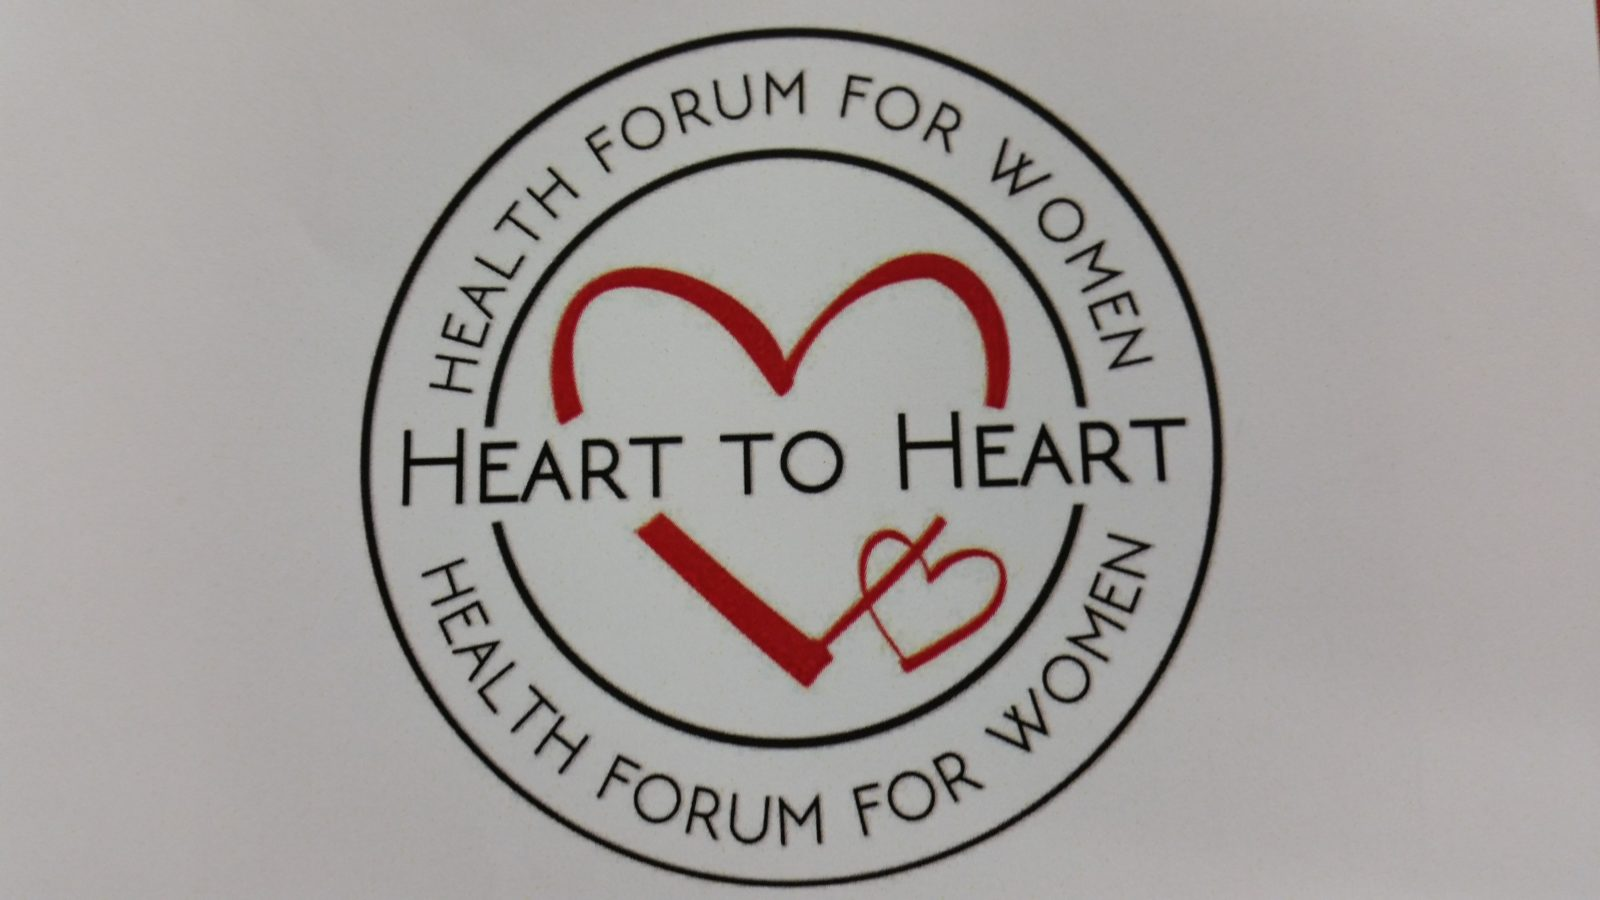 Heart to Heart: A health forum for women